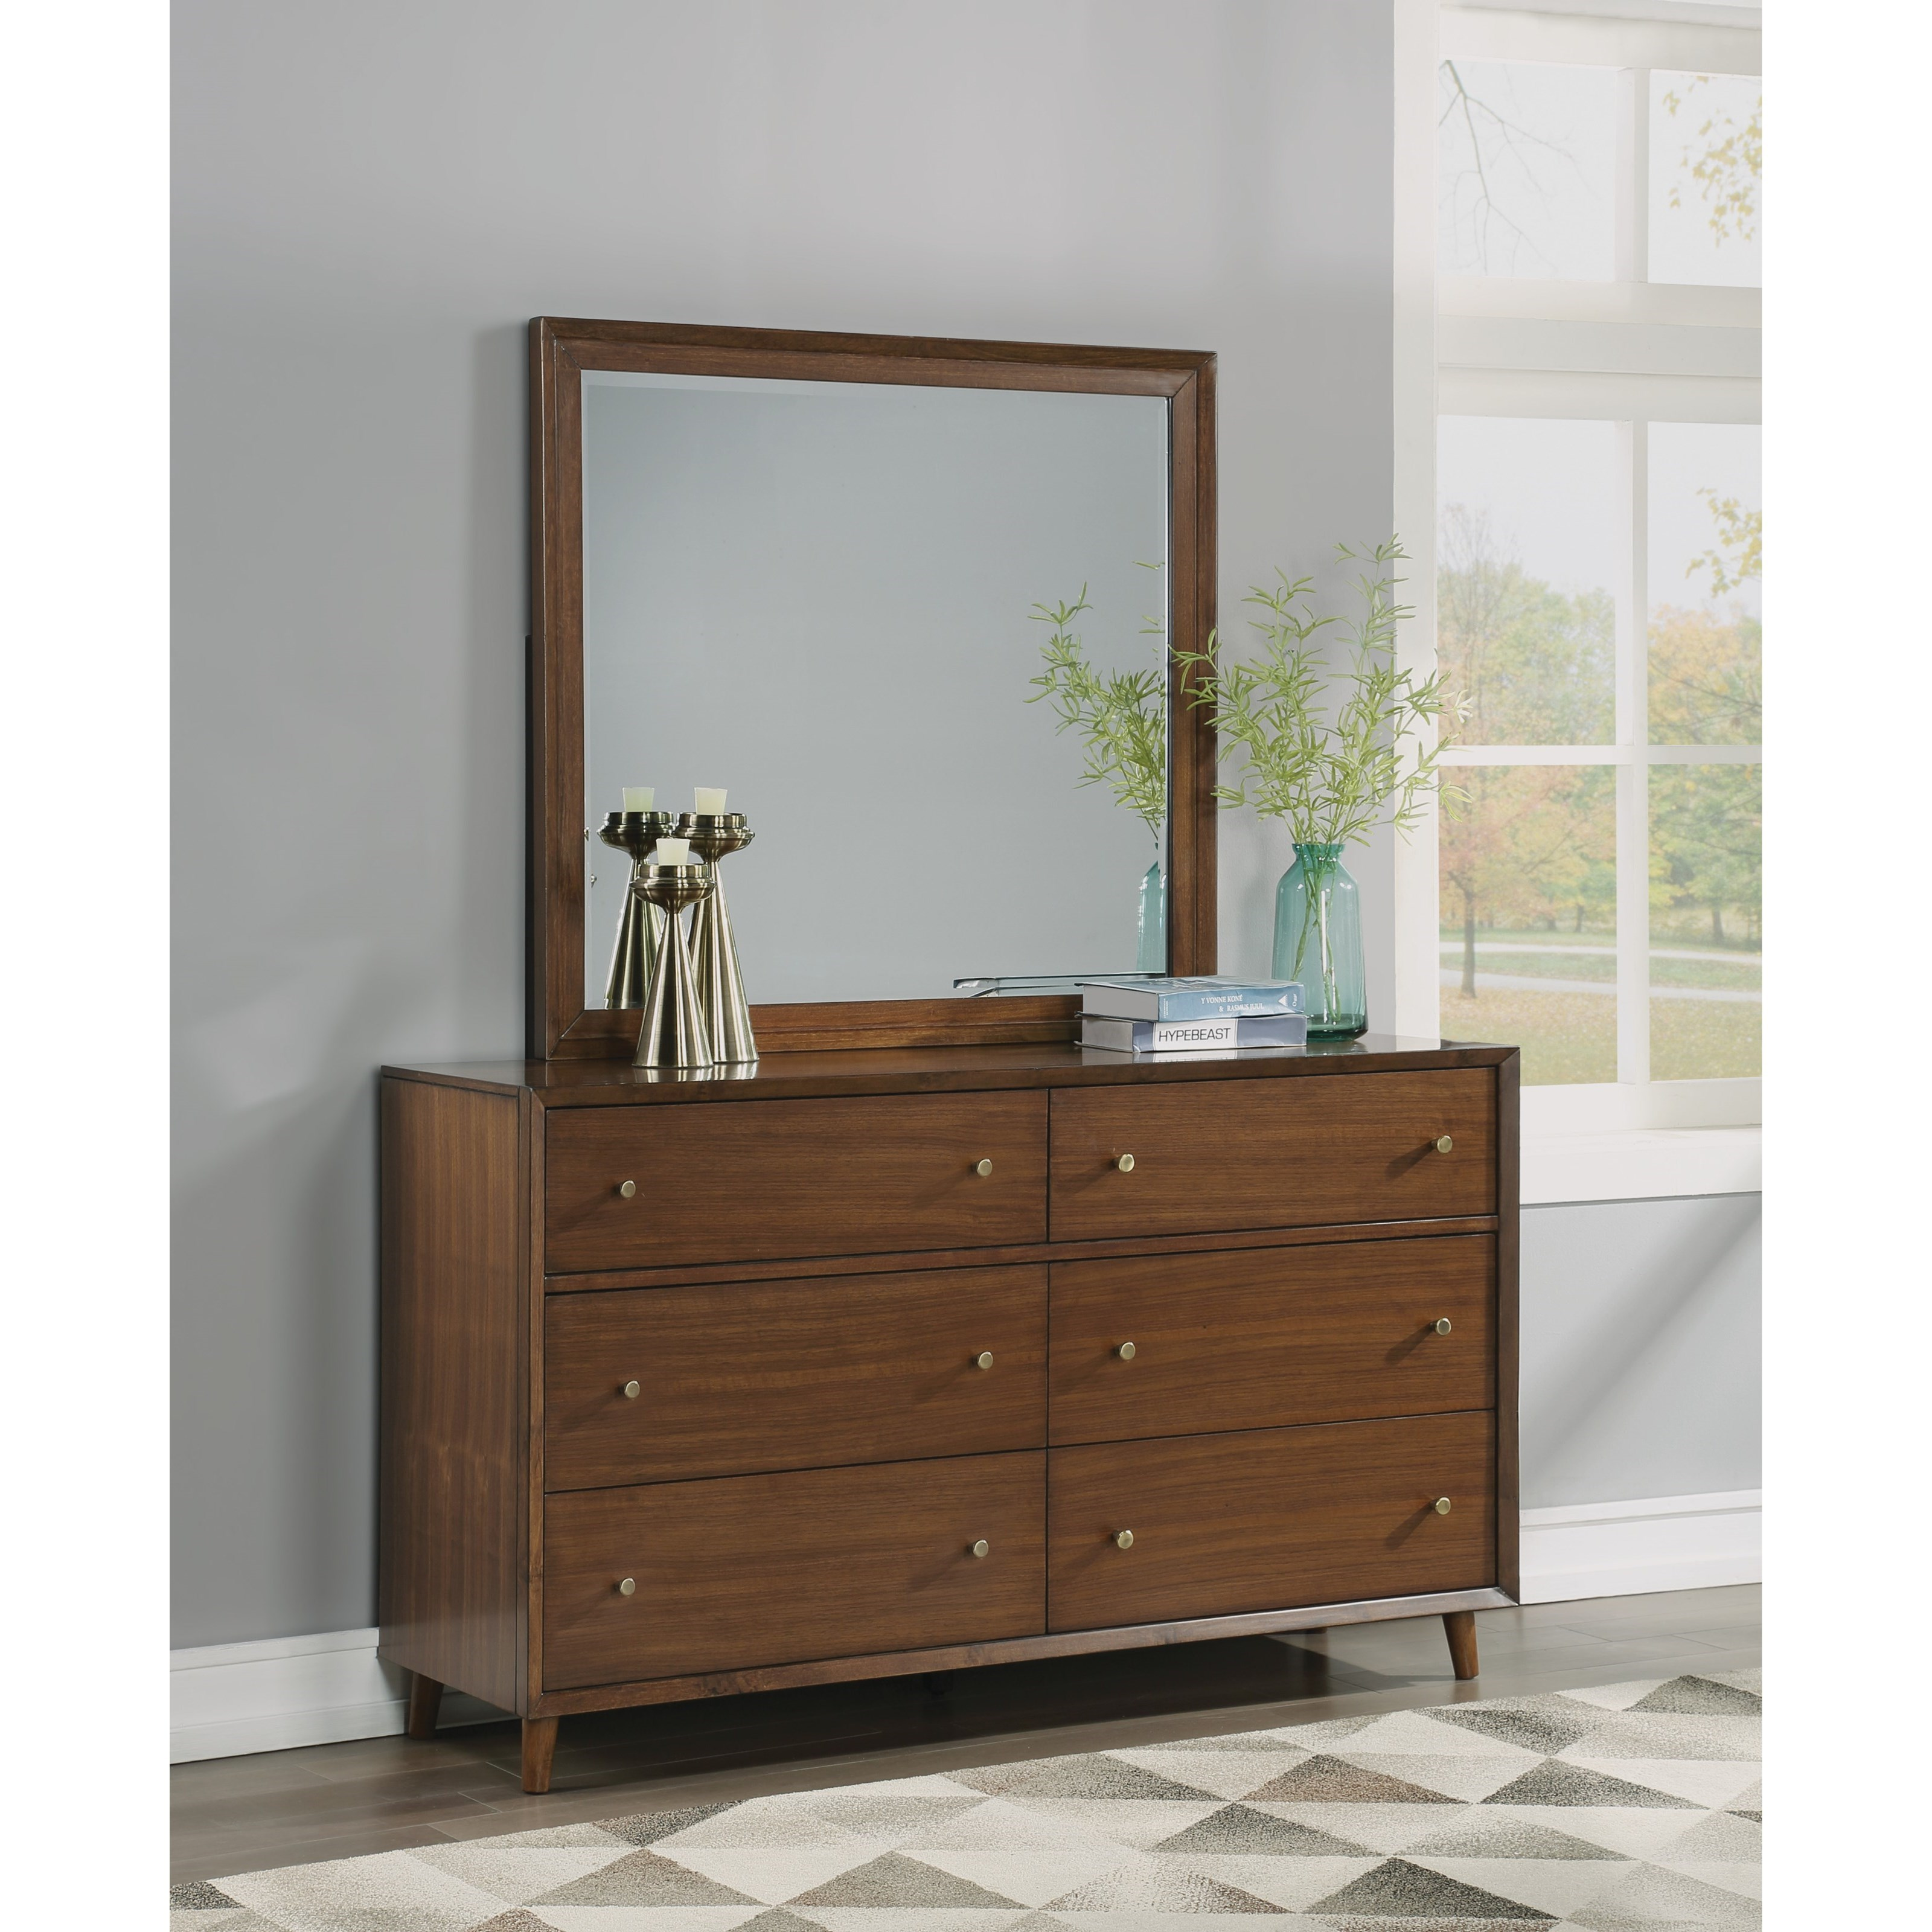 Ludwig Dresser and Mirror Set by Flexsteel Wynwood Collection at Fashion Furniture